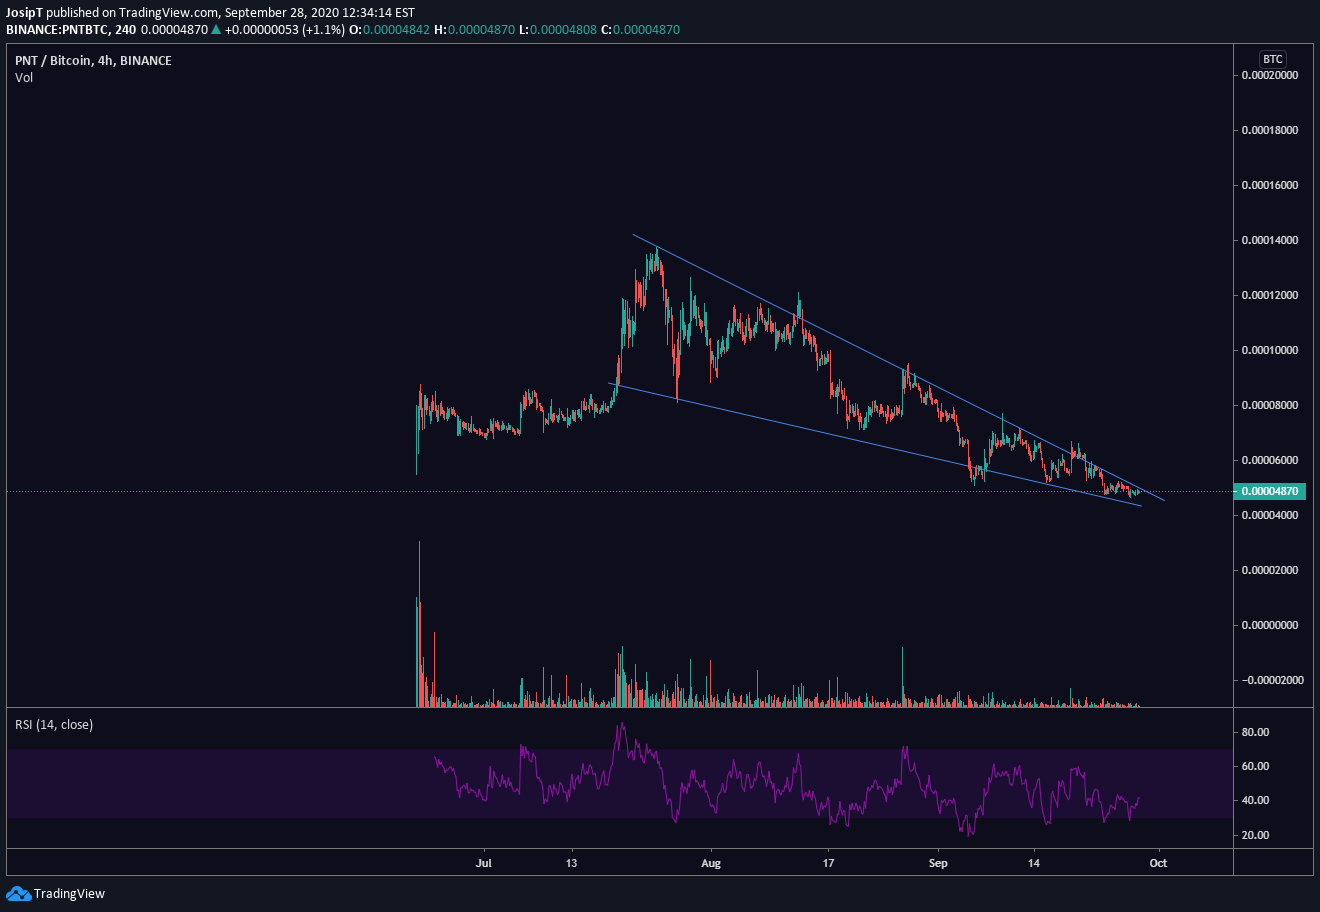 Pnt Btc For Binance Pntbtc By Josipt Tradingview